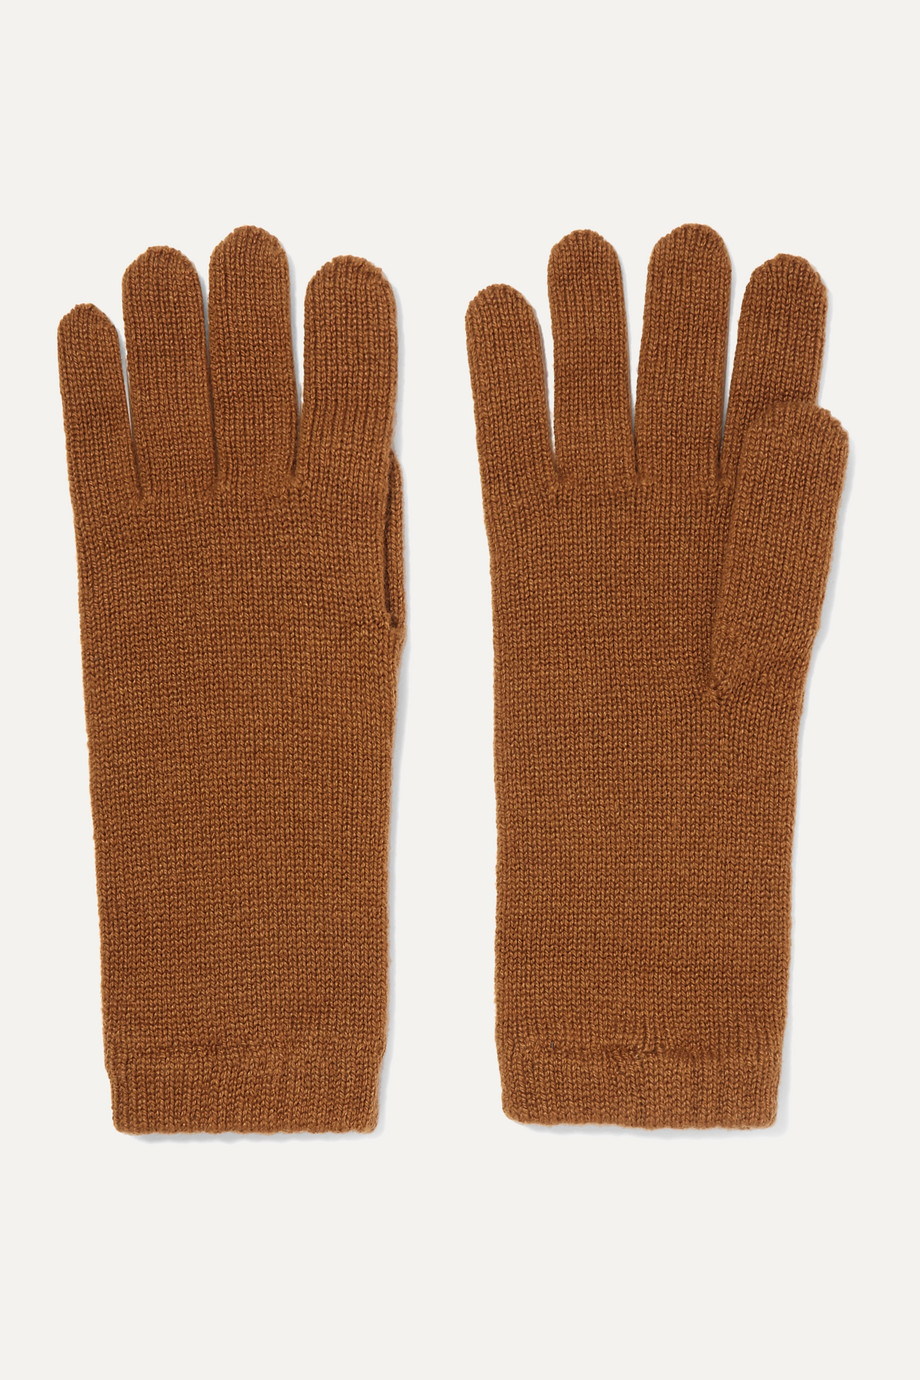 Johnstons of Elgin + NET SUSTAIN cashmere gloves